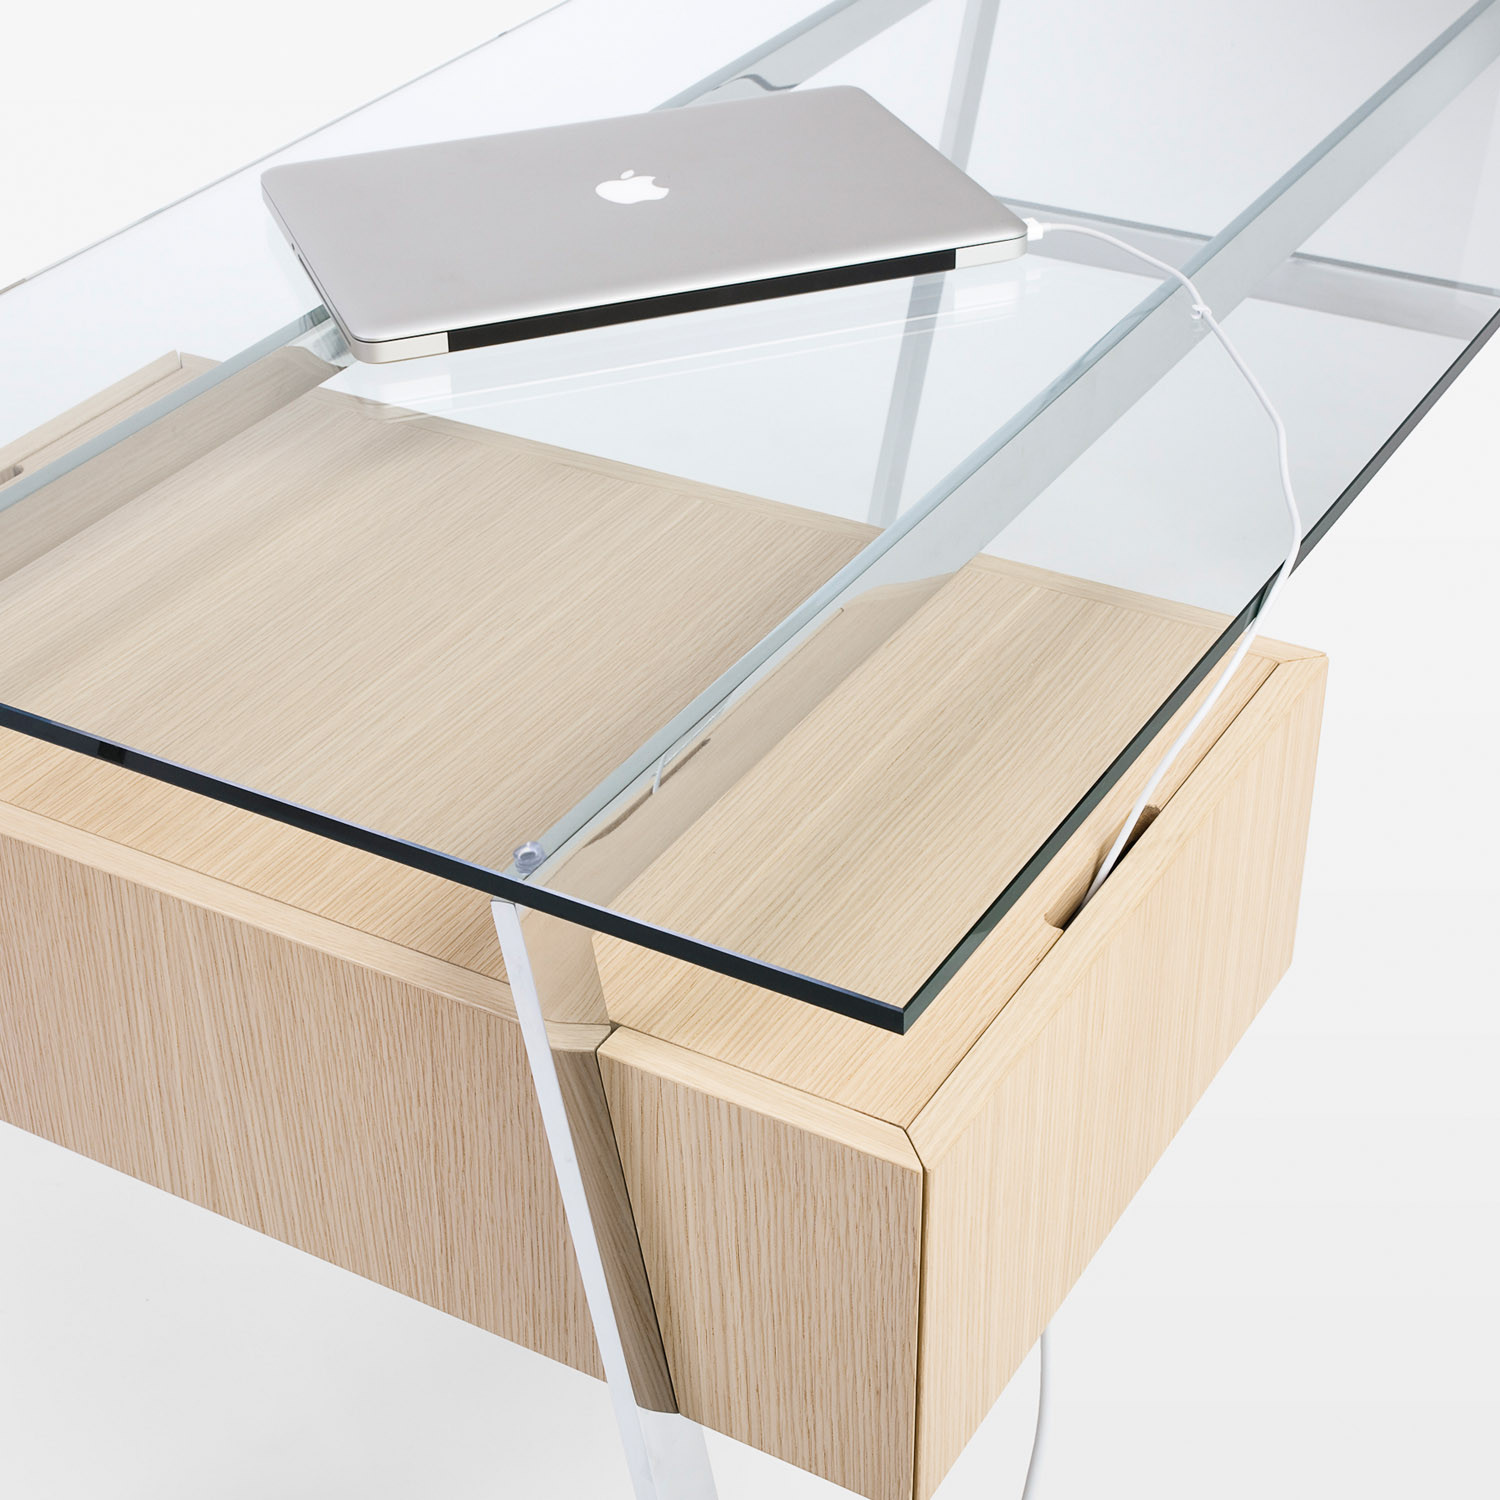 Homework Glass Desk